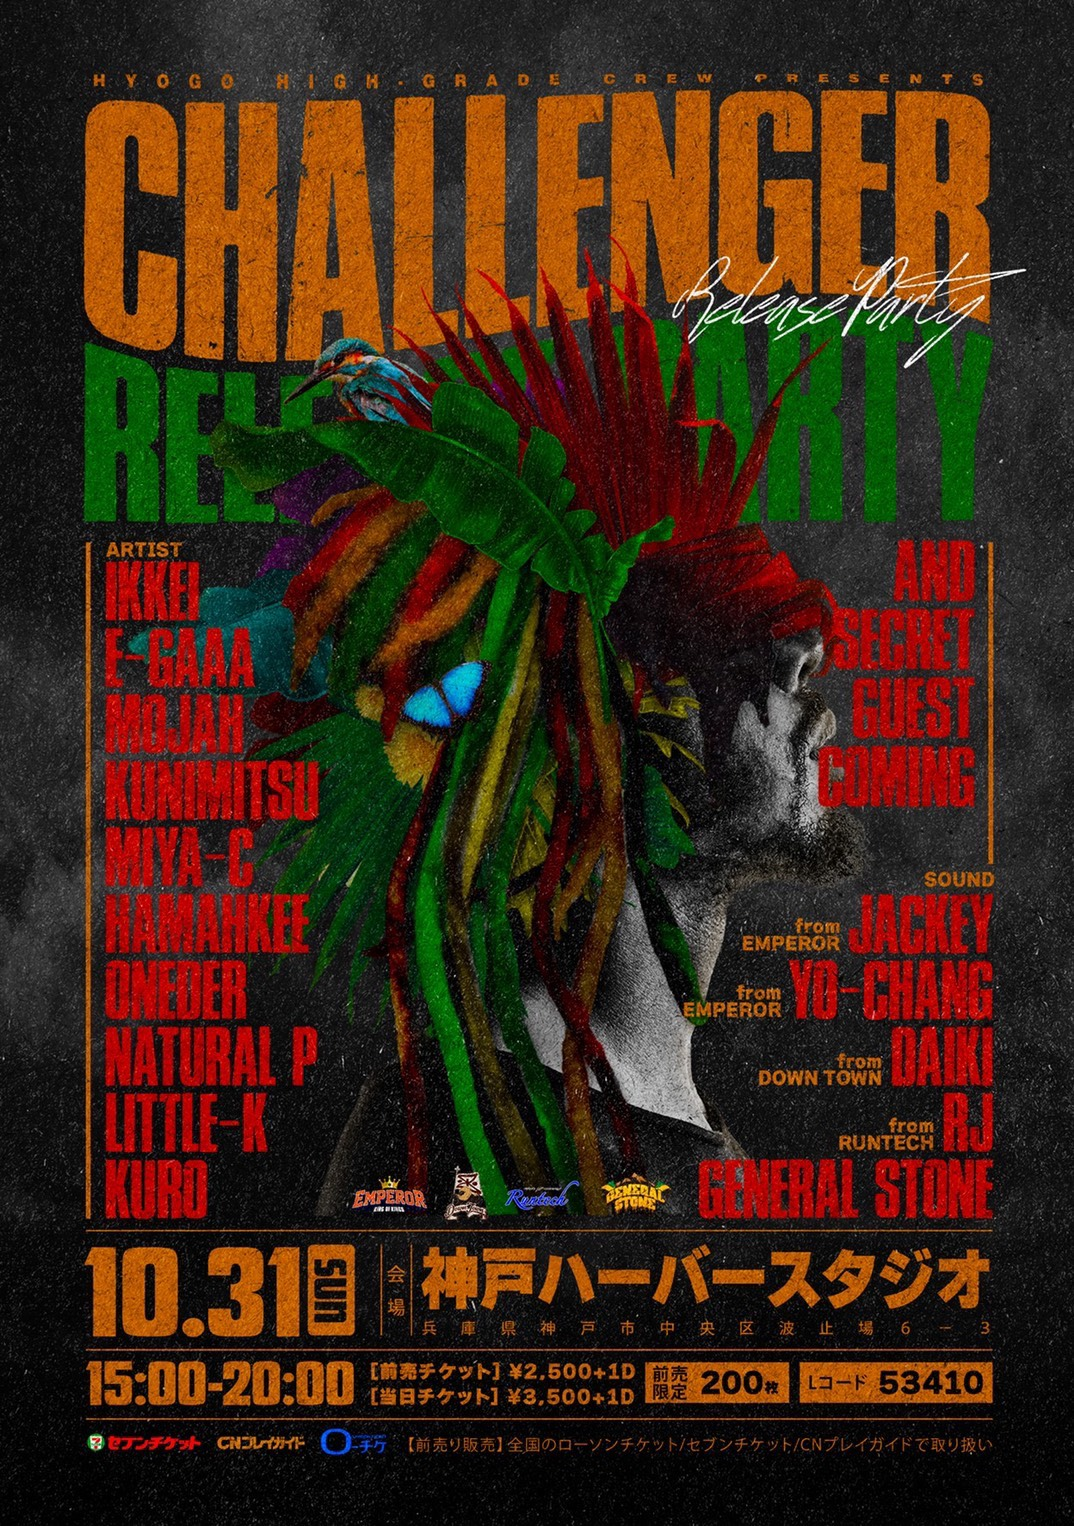 """HYOGO High grade  Crew presents """"CHALLENGER RELEASE PARTY"""""""